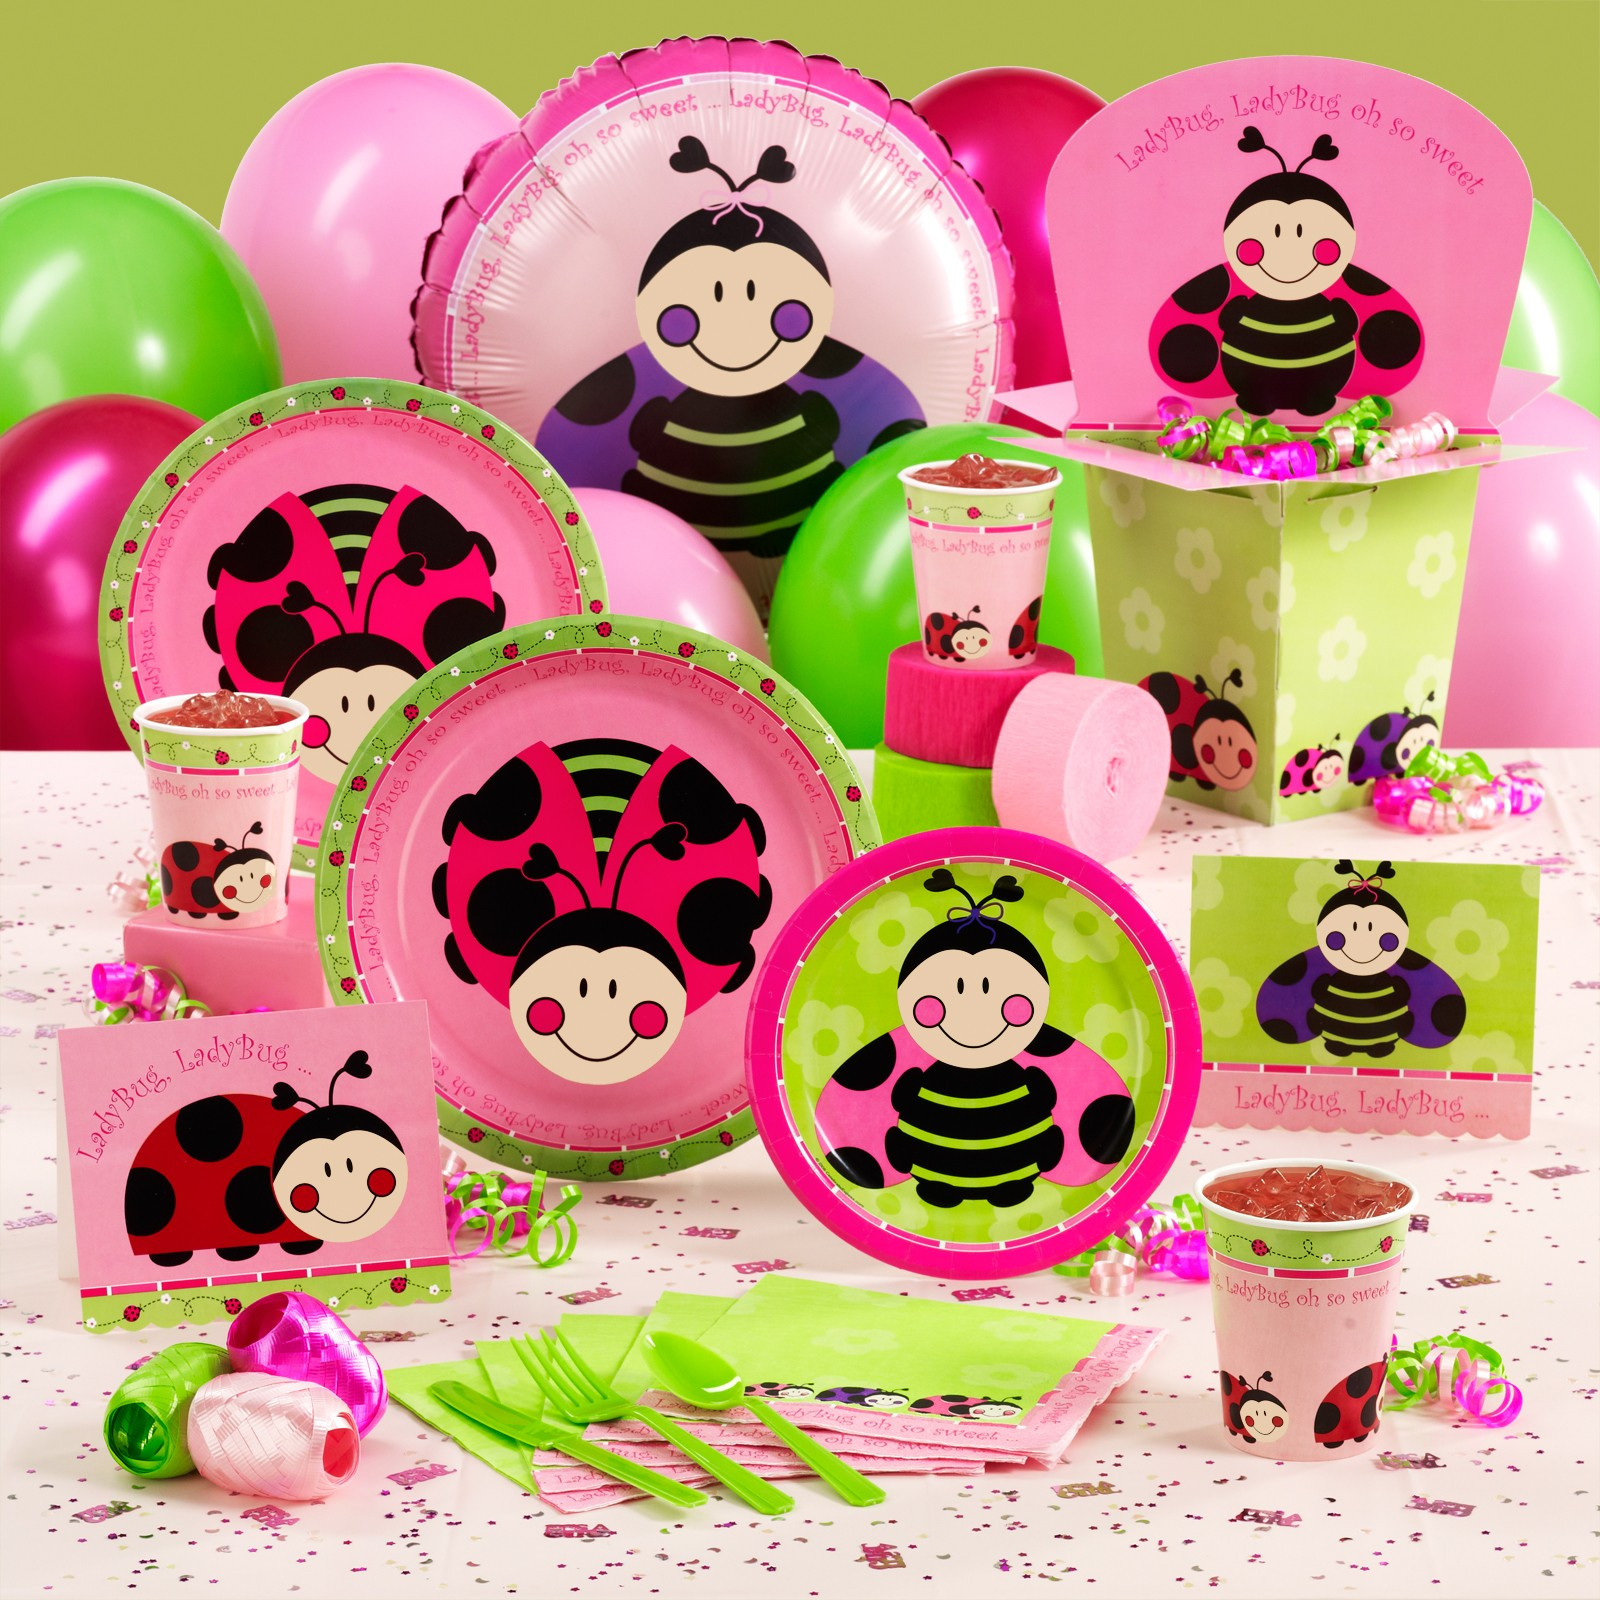 Baby Shower Decorations At Party City  Sandy Party Decorations